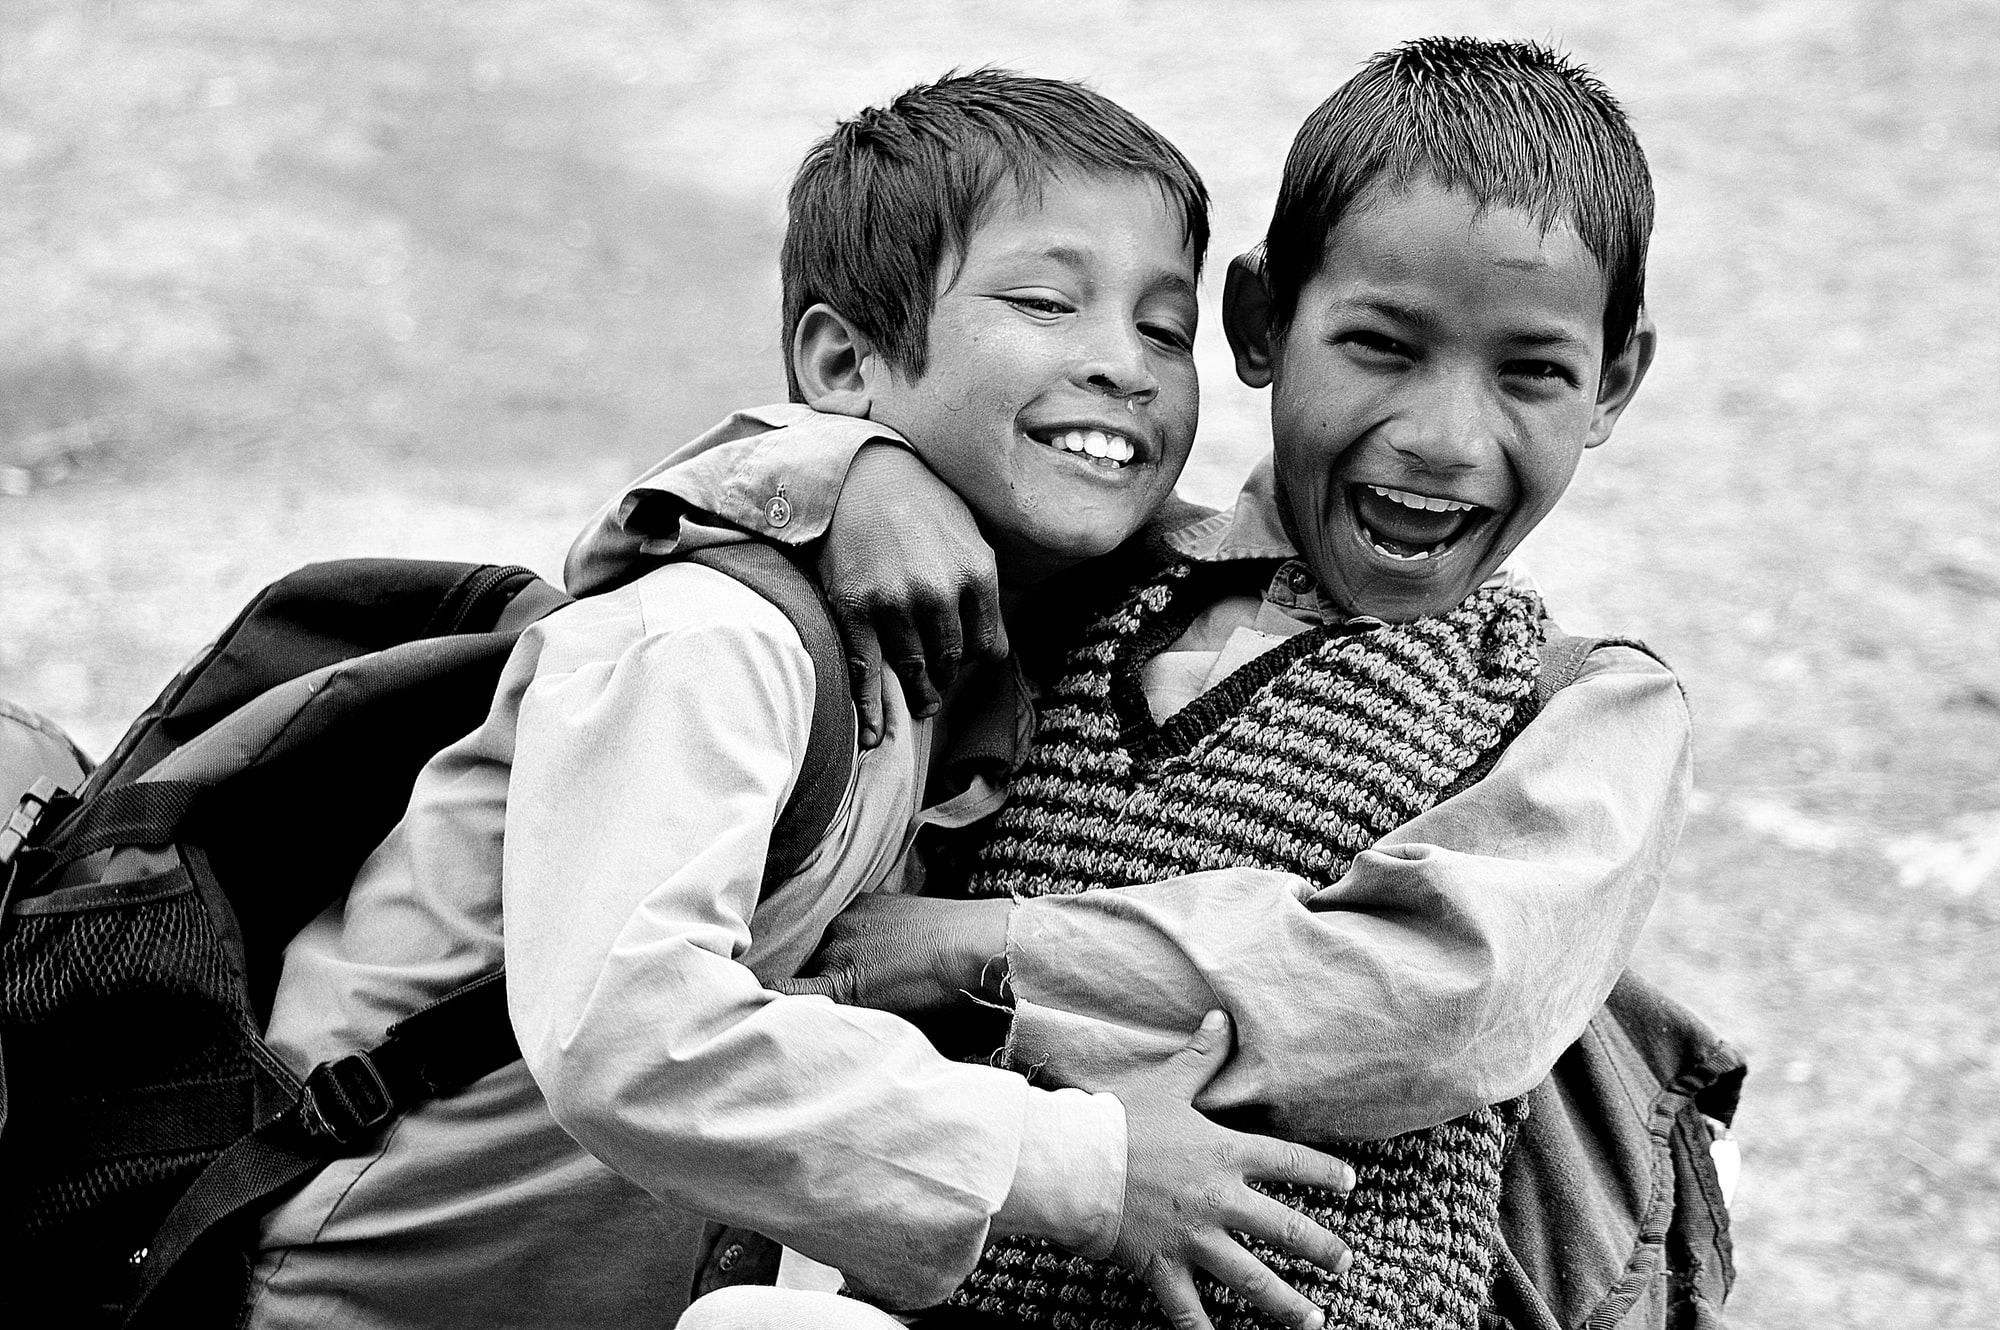 Trekking in the himalayan ranges, once we came across the region of Grahan which has this remote village wherein these kids were the locals enjoying outside their small wooden wall school. They reminded us of the childhood memories of ours which we had with our besties.